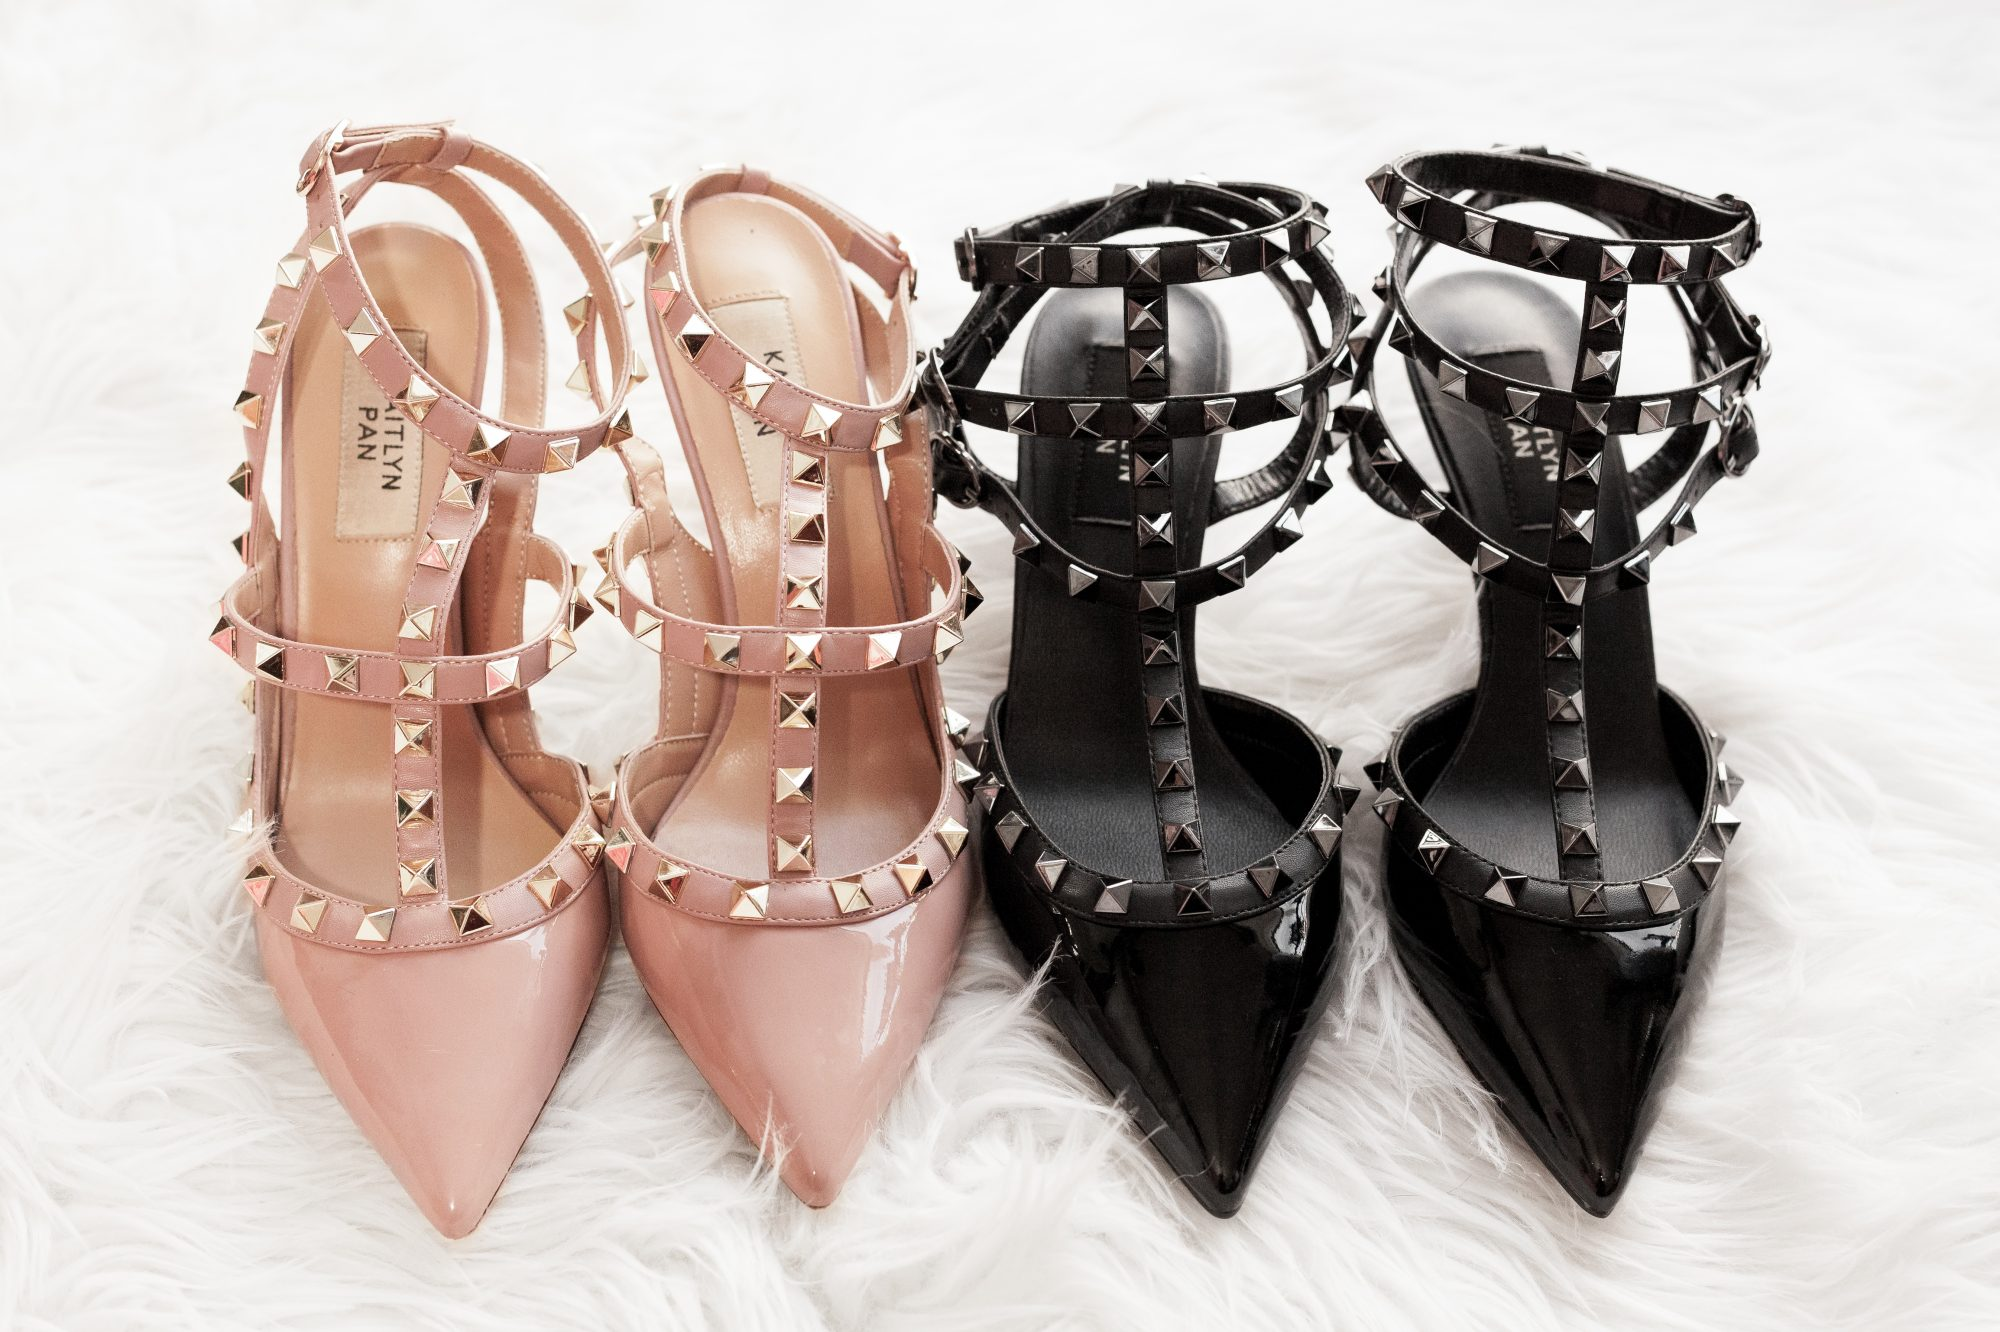 Just like the original Valentino, the kitten heel does have one significant difference in design aside from heel height. The 4-inch version has a single ankle strap, whereas the kitten heel has 3 straps. - www.theballeronabudget.com